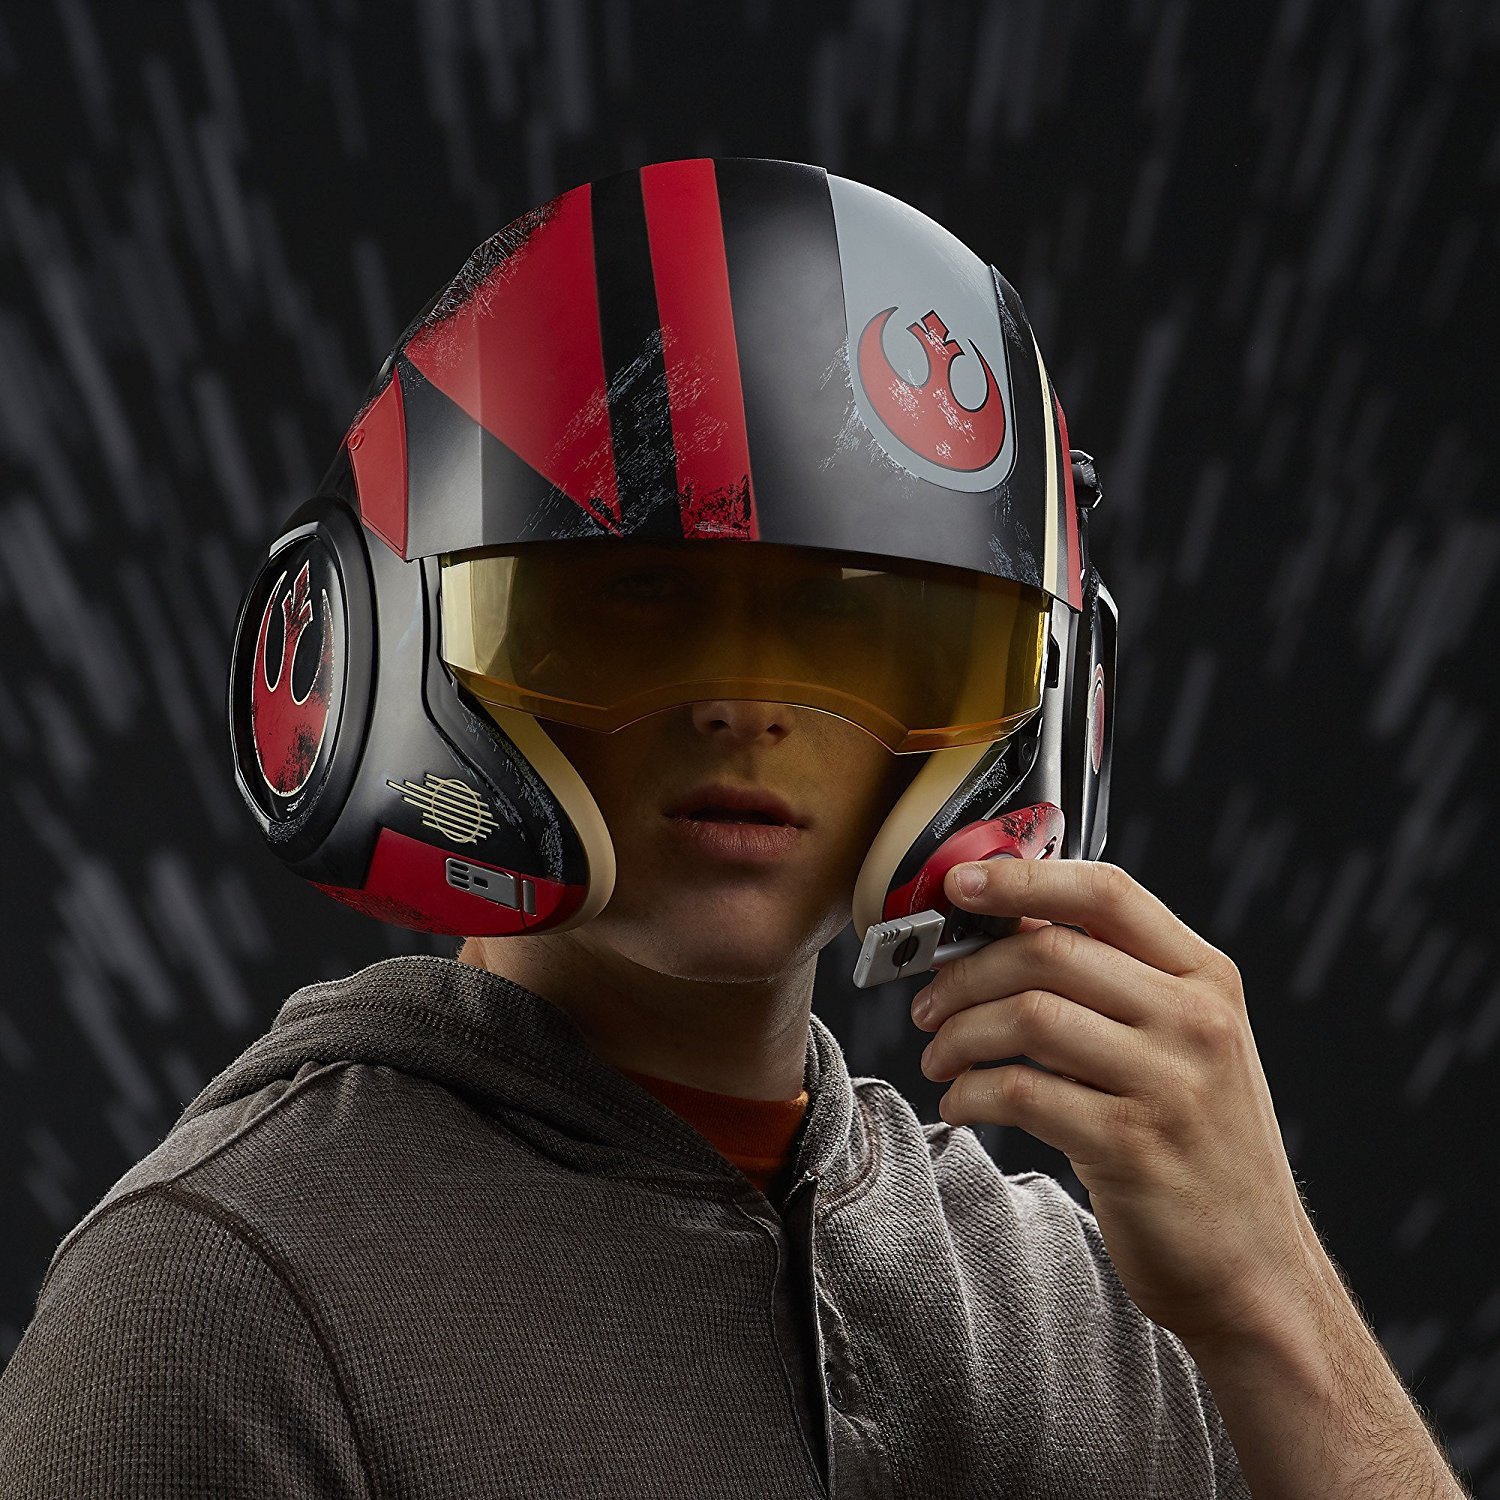 The Black Series Poe Dameron Electronic X-Wing Pilot Helmet